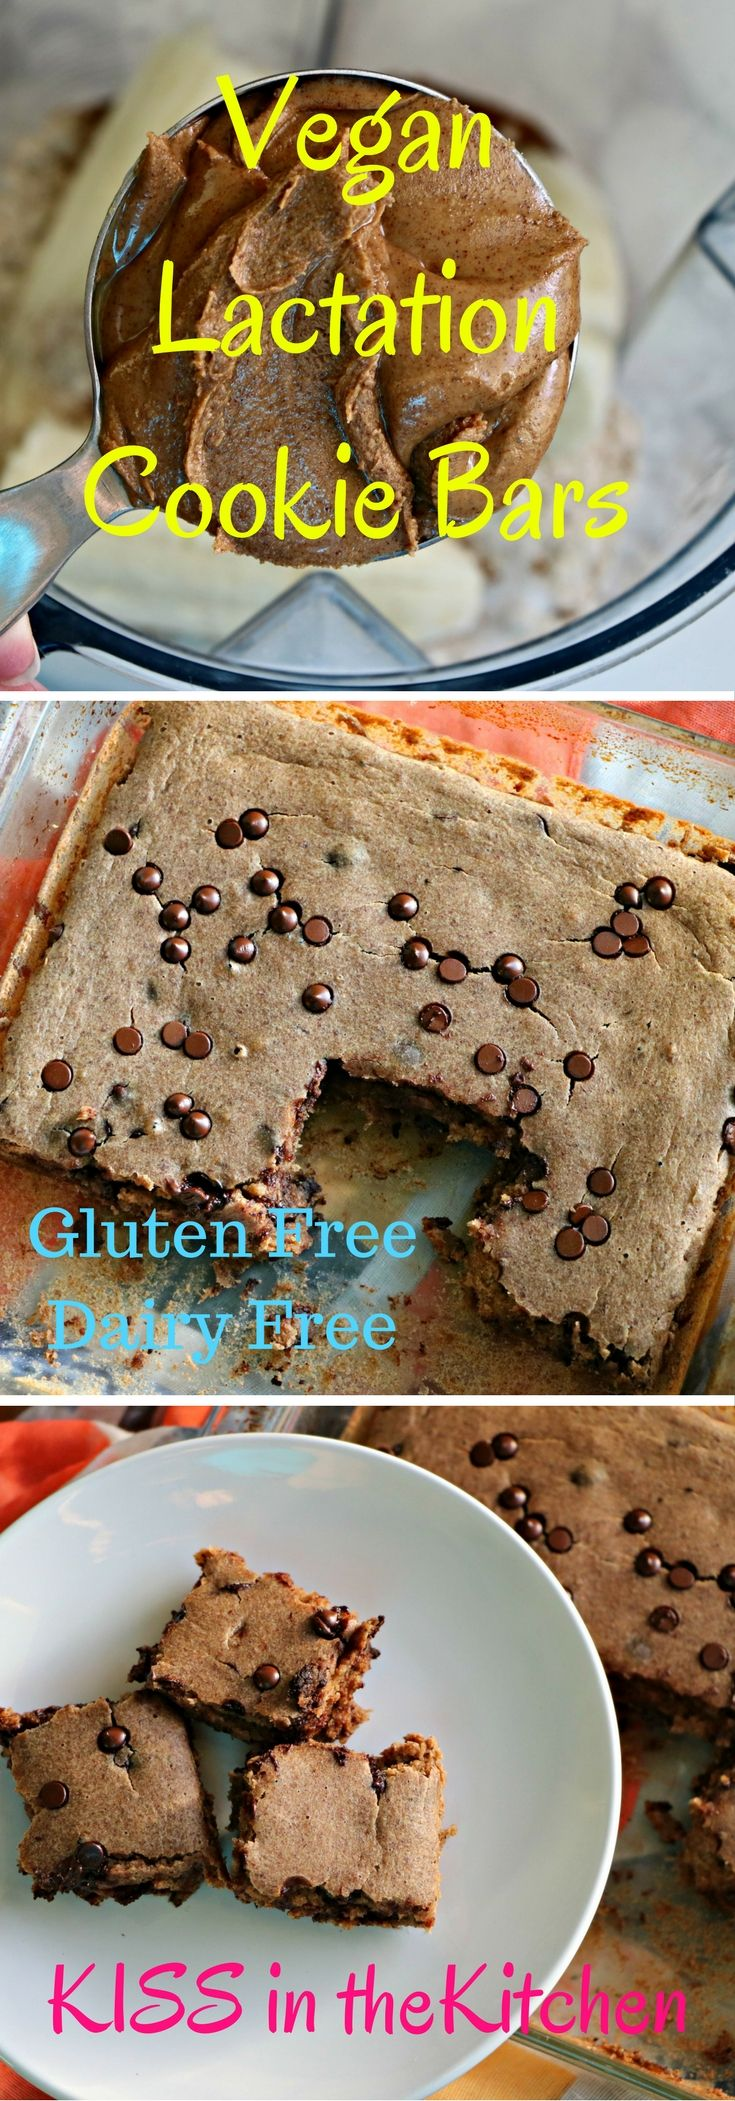 #Vegan Lactation Cookie Bars perfect for moms looking to boost breast milk supply or just wanting a nourishing snack! #GF #dairyfree